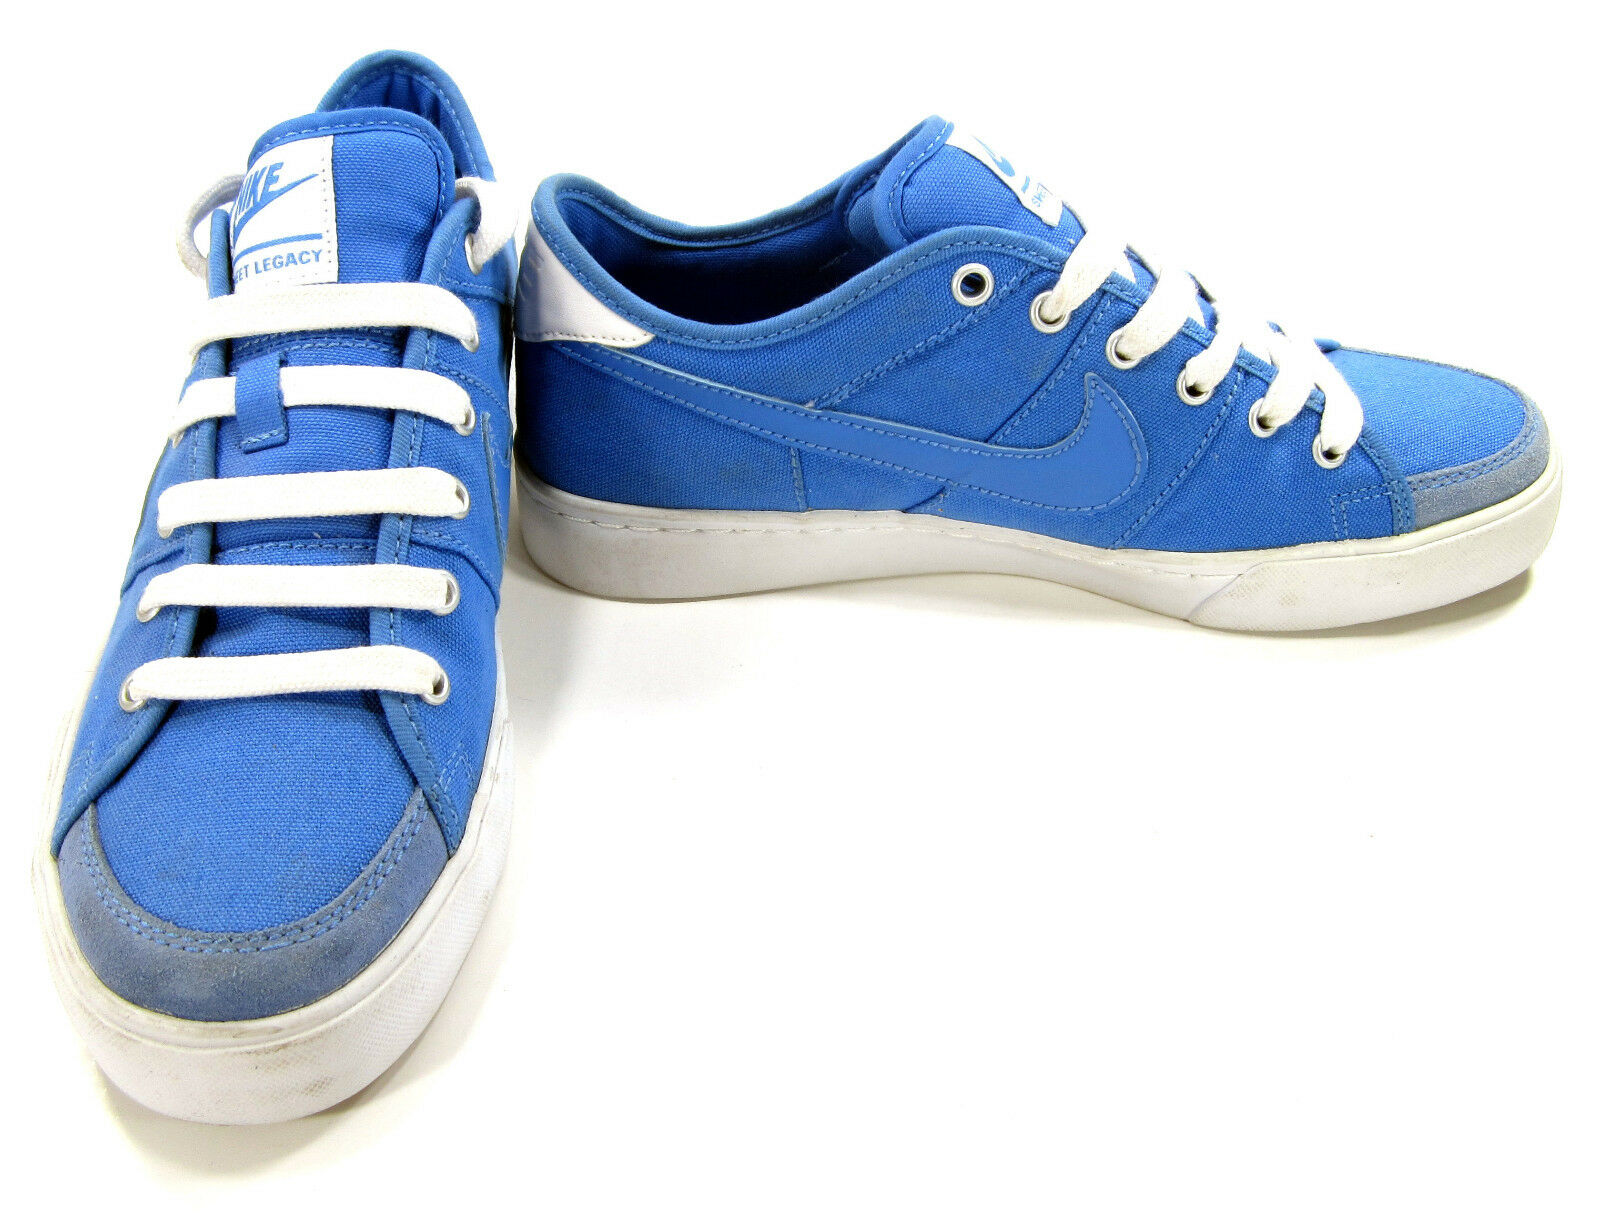 best-selling model of the brand Nike Shoes Sweet Legacy Lo Vibrant Blue Sneakers Comfortable